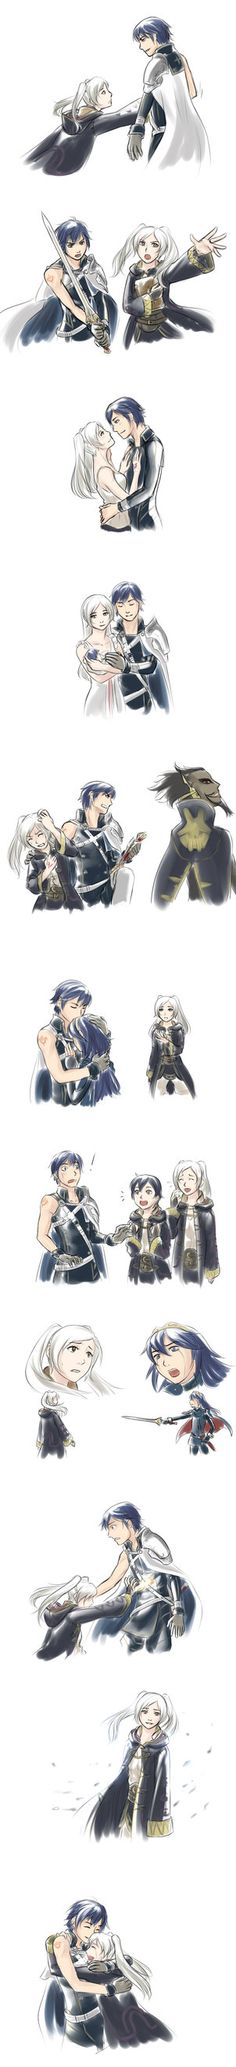 OMG I FINISHED FIRE EMBLEM AWAKENING A WHILE AGO AND THAT GAMES IS THE BOMB (Am I the only one who fangirled when Chrom proposed to Robin? They had an animation just for that X3)